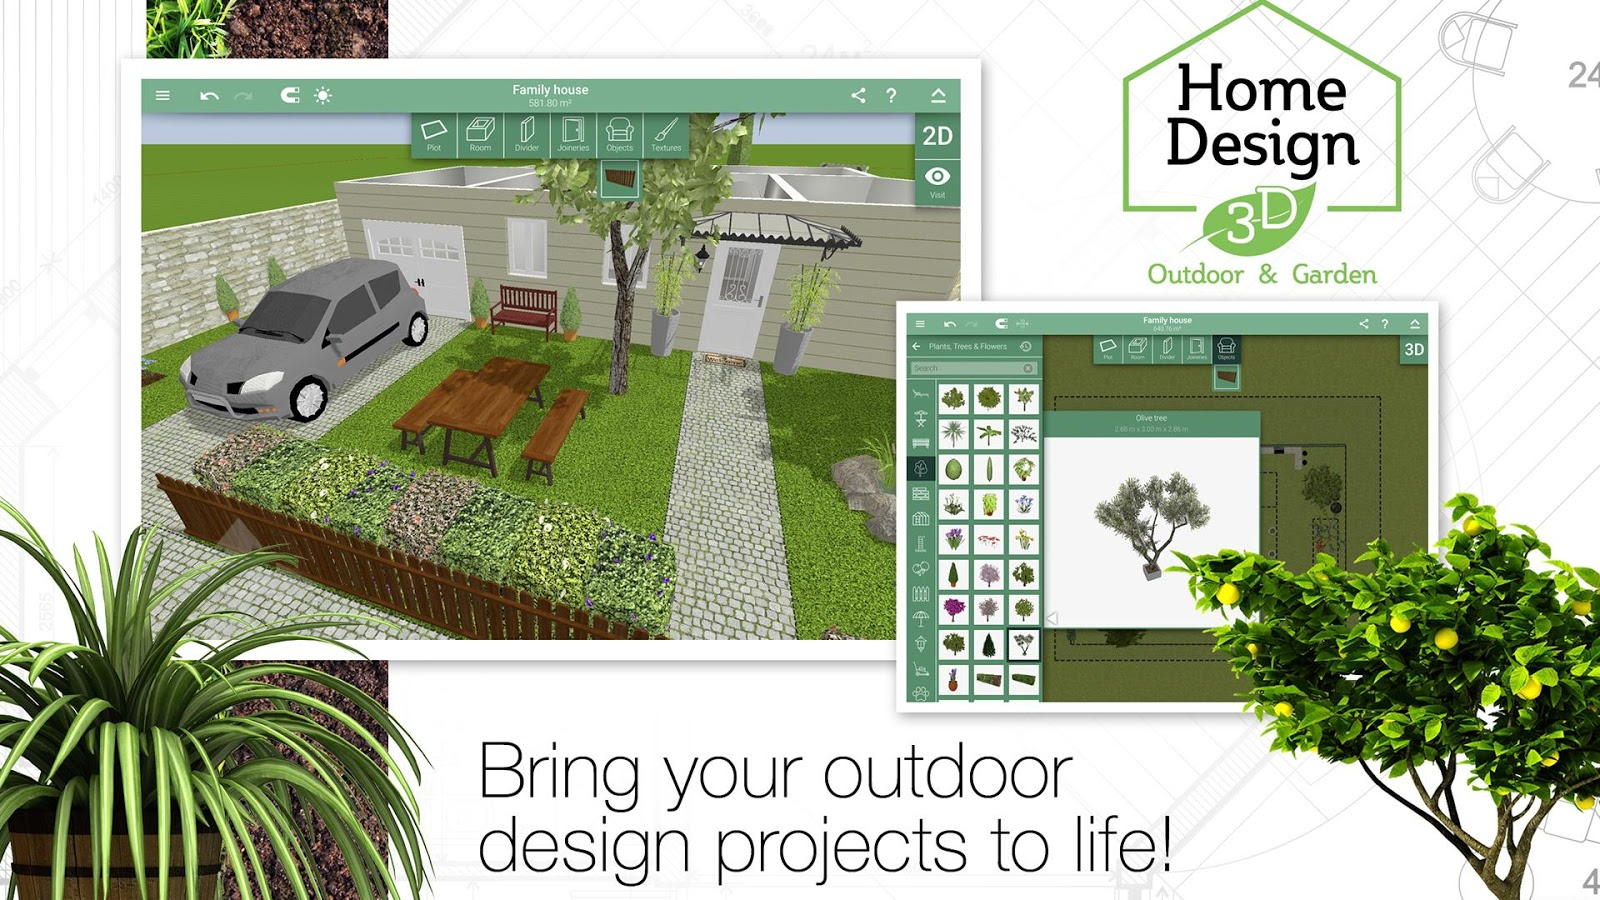 House design application - Home Design 3d Outdoor Garden Screenshot